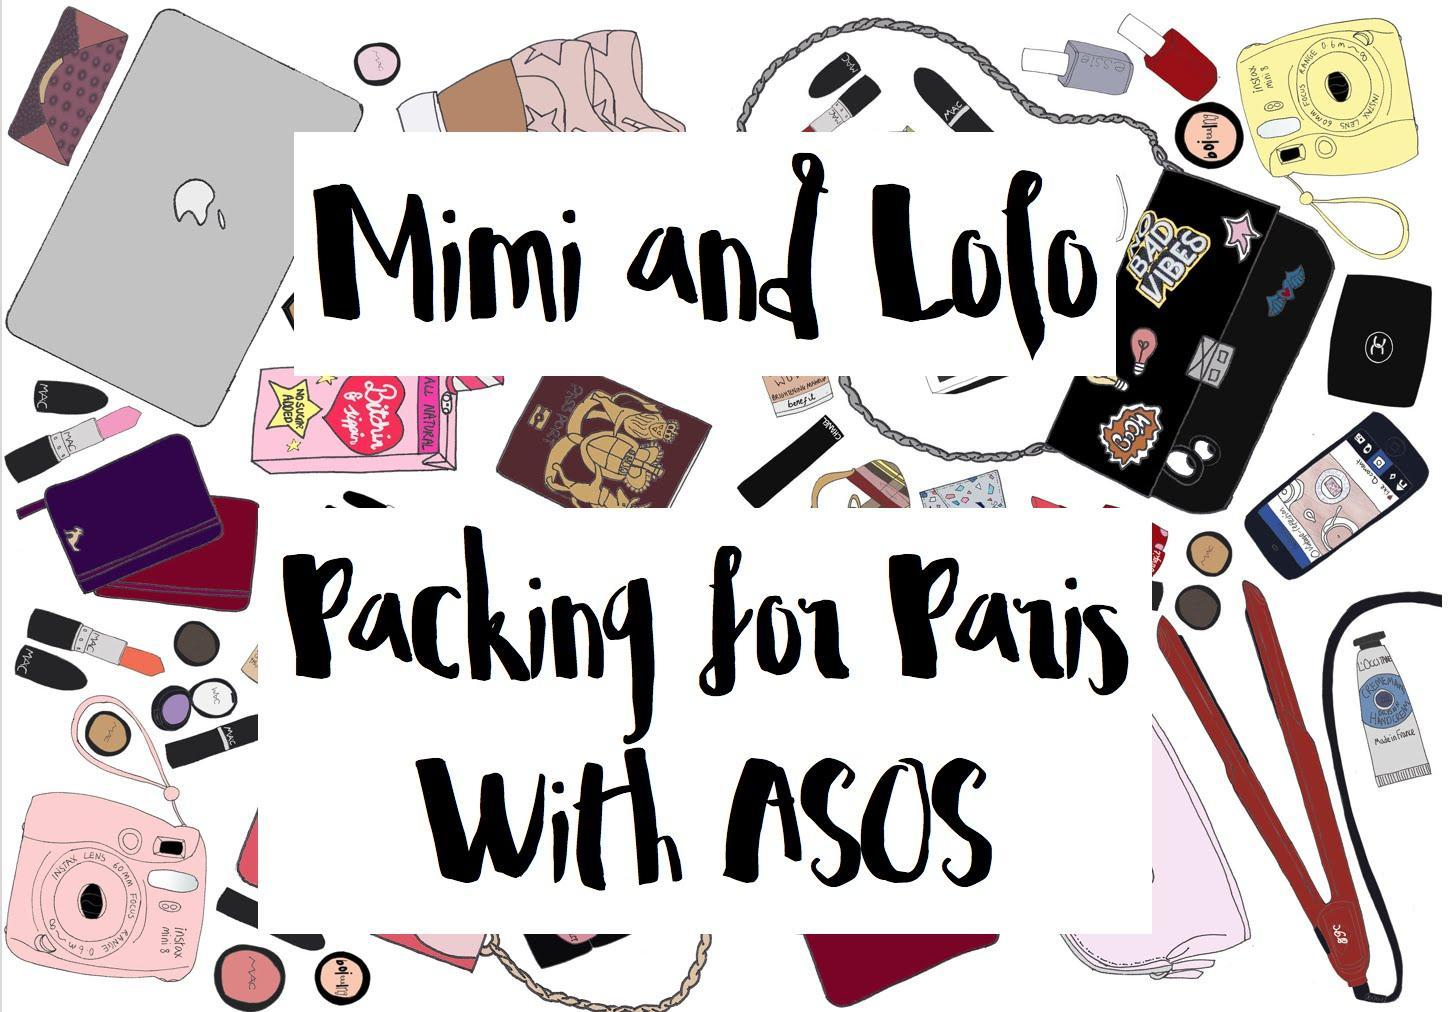 Packing for Paris with ASOS